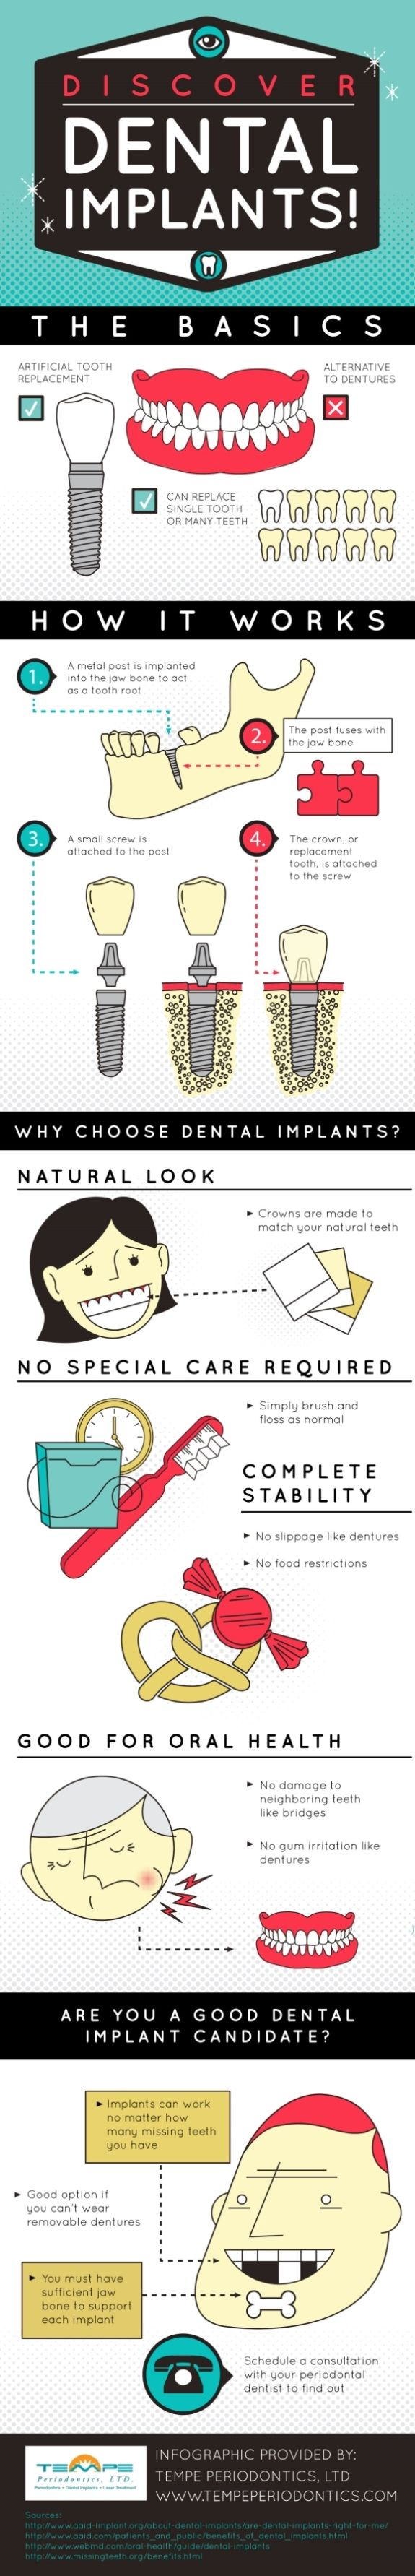 Dental implants patients must have sufficient jaw bone to support each implant. When going on a dental vacation to Mexico, Asia or elsewhere - be sure to use a Board Certified Dentist for the best results. Visit Certified Dentists Internationale for Free Estimates and Referrals. www.certifieddentists.org